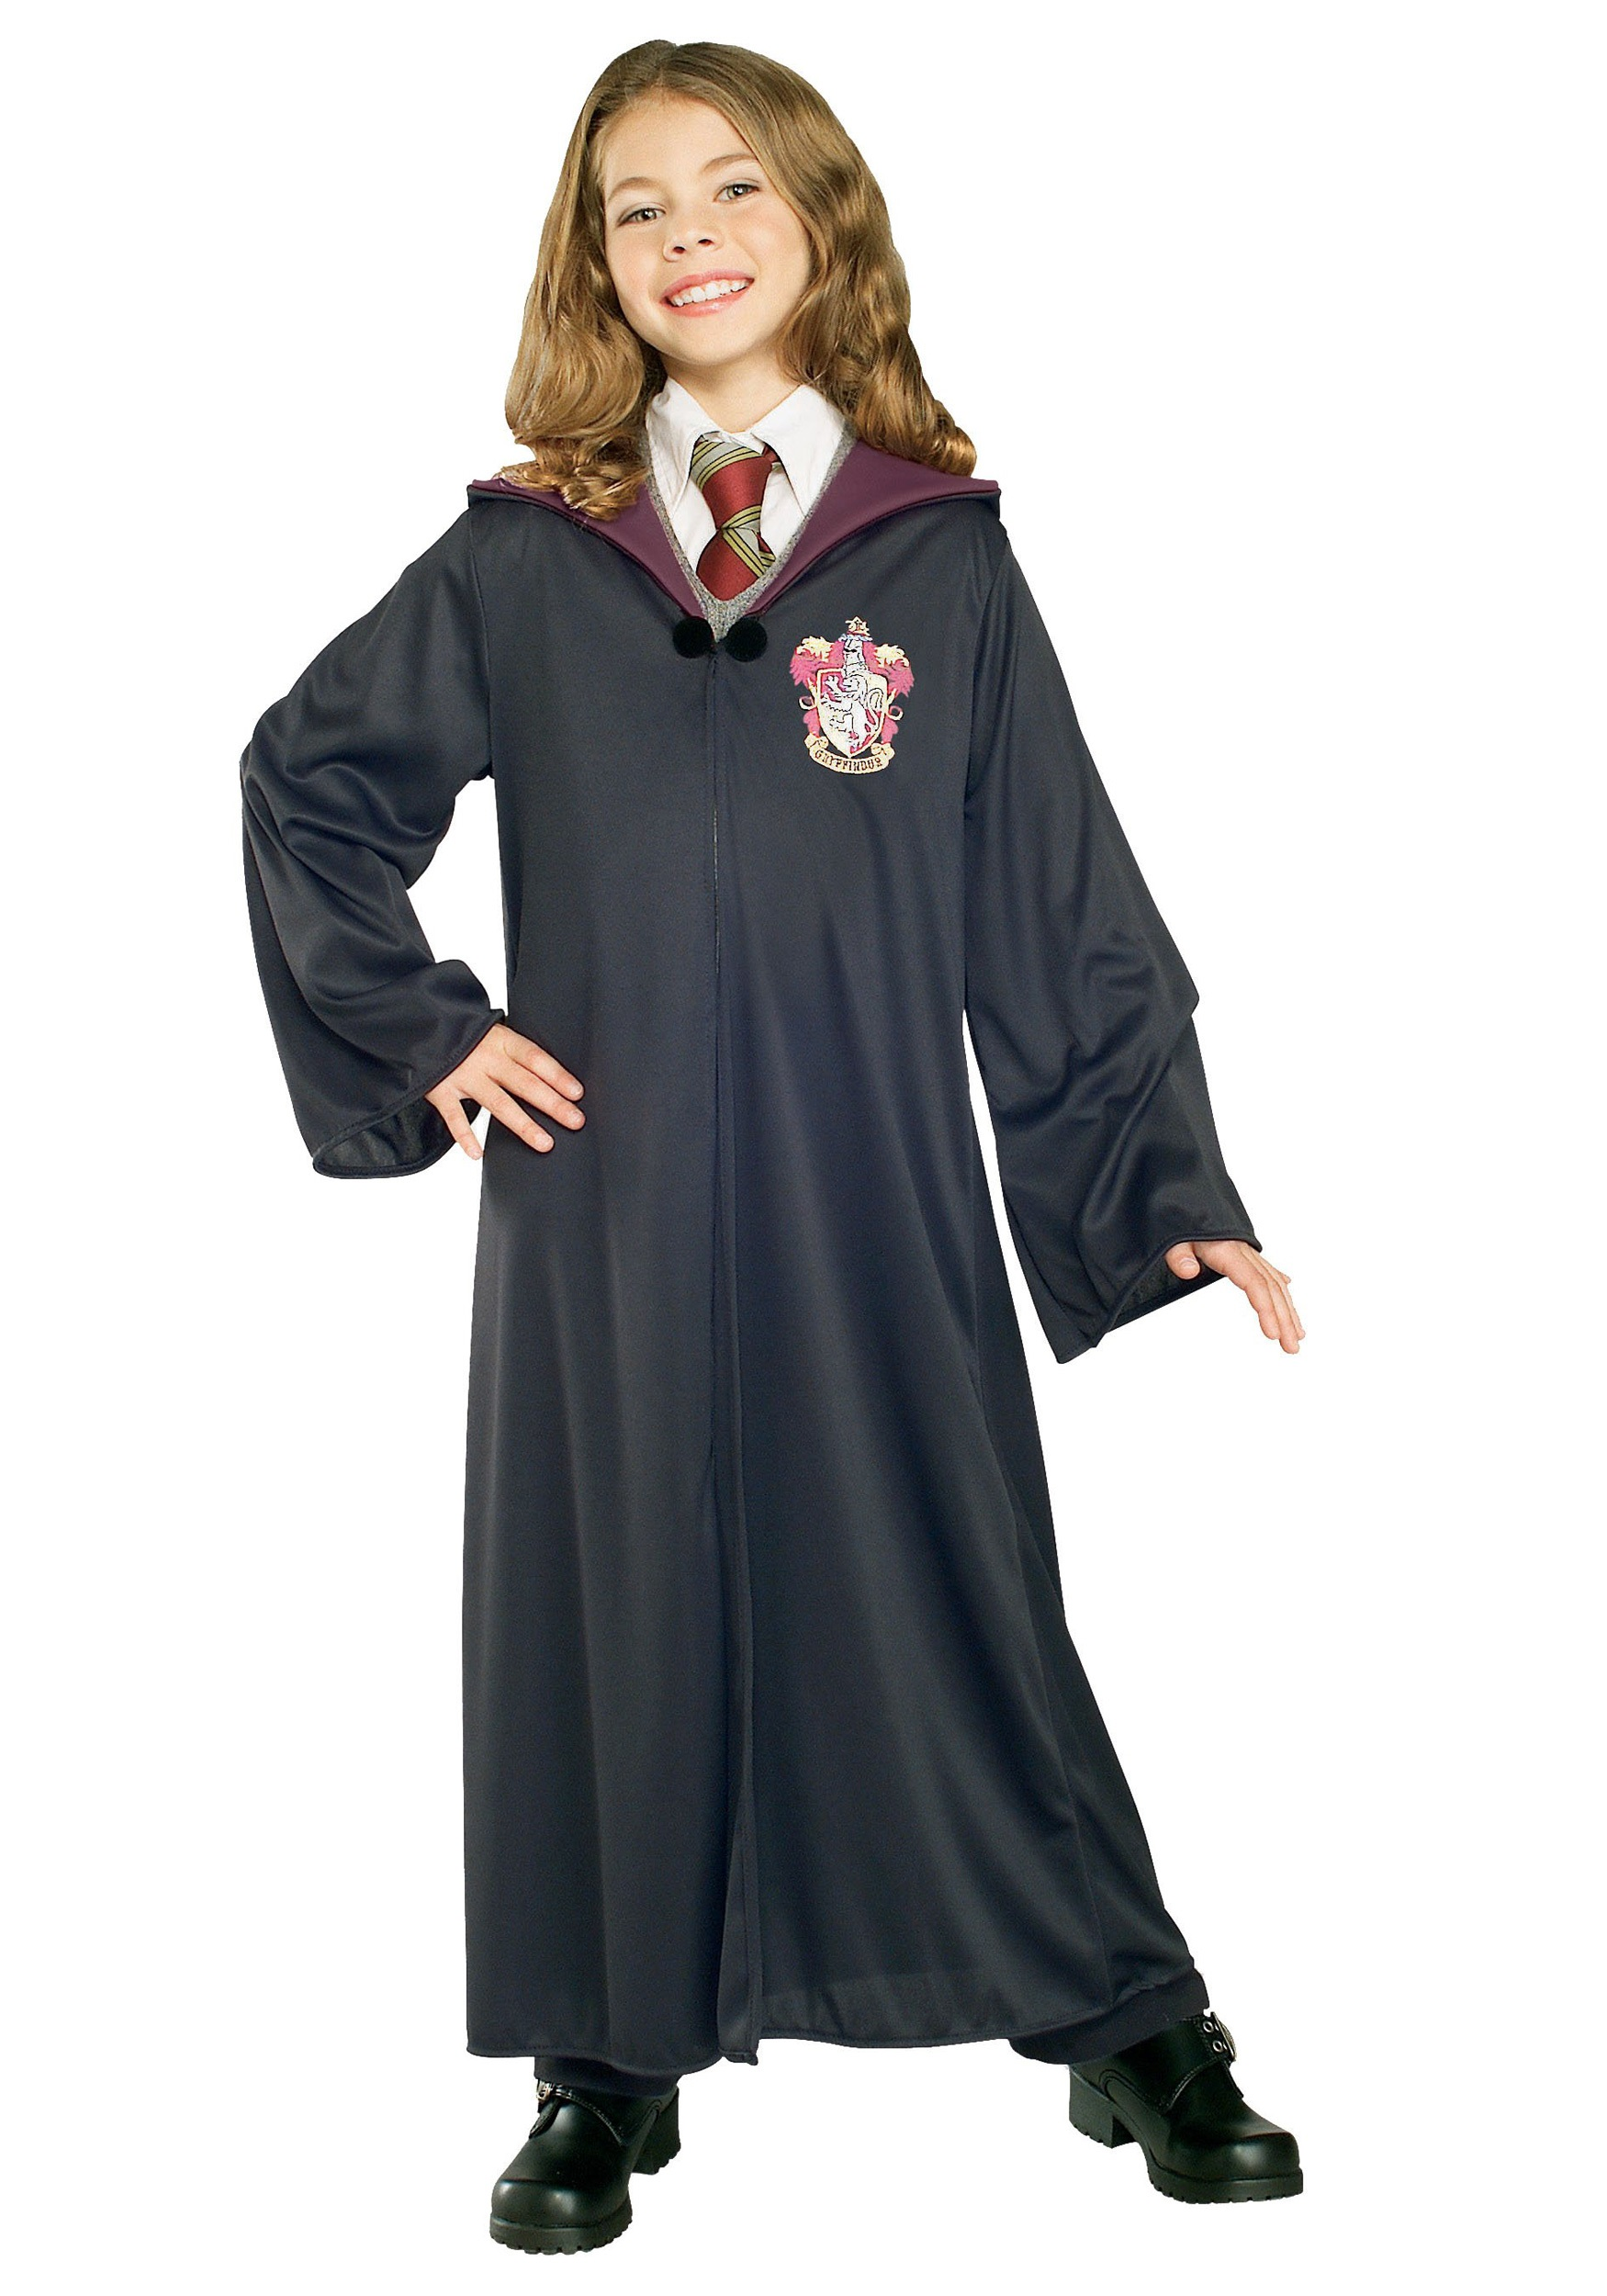 ddf7be4dad53 Child Hermione Granger Costume